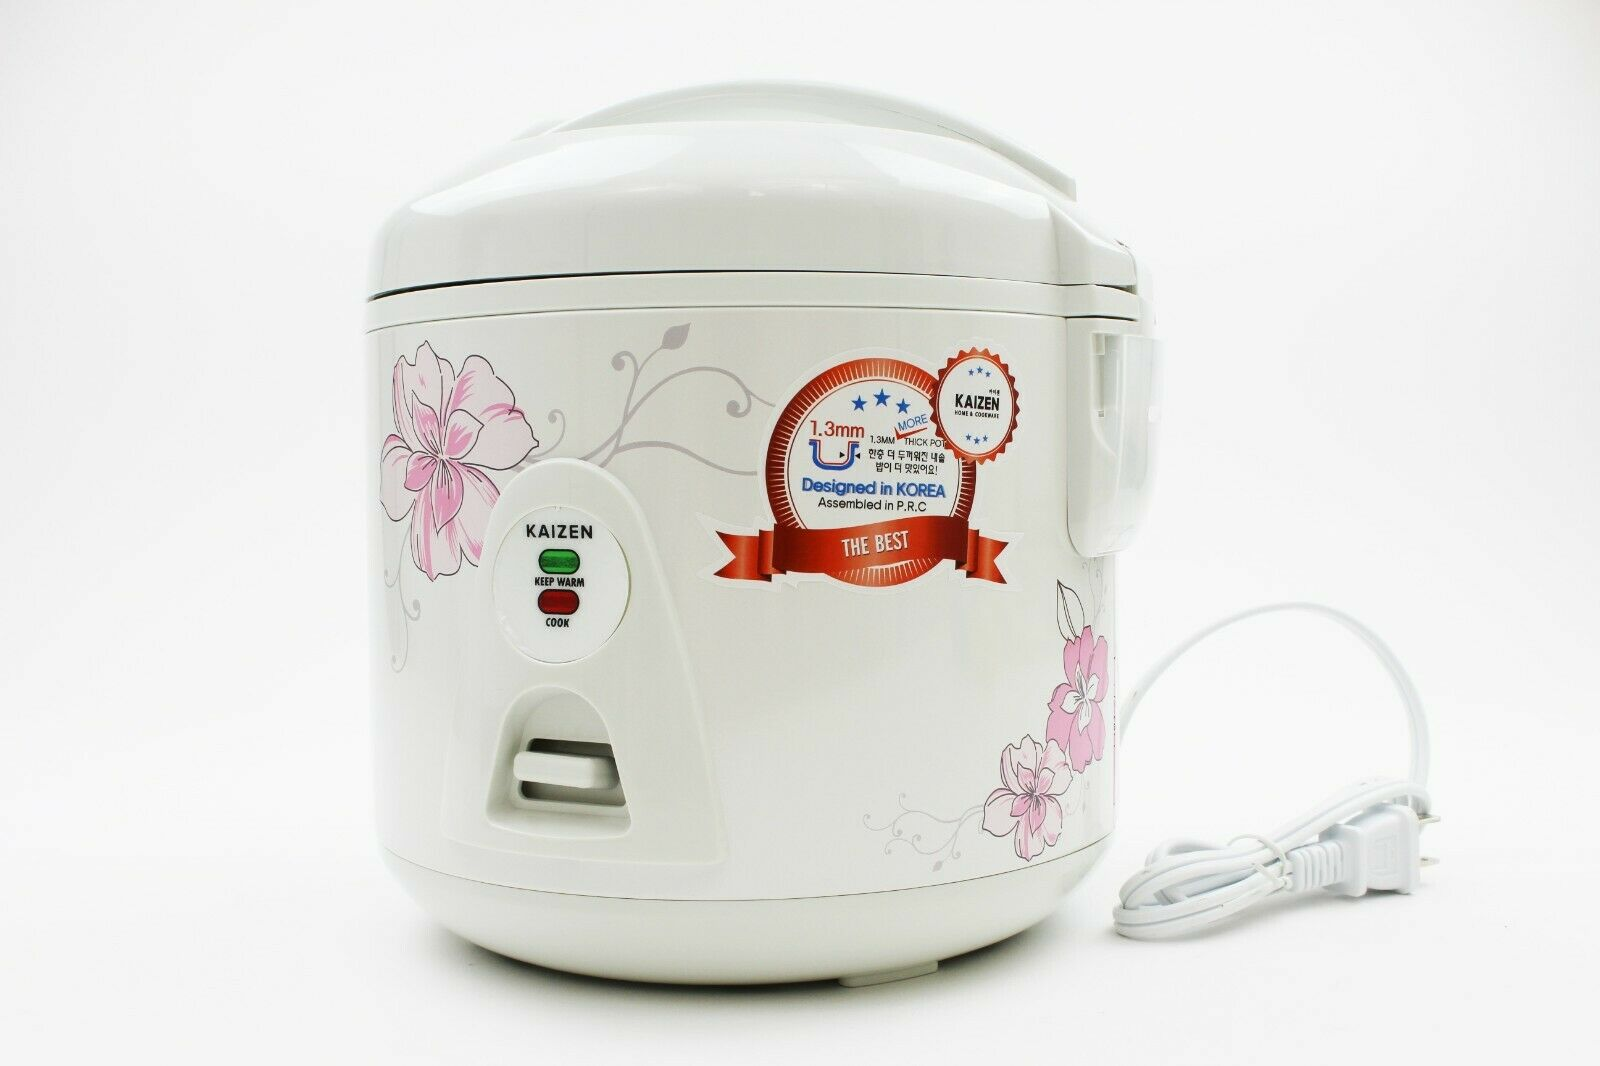 KAIZEN Electric Rice Cooker 4 Cup 6 Cup 10 Cup with Food Ste